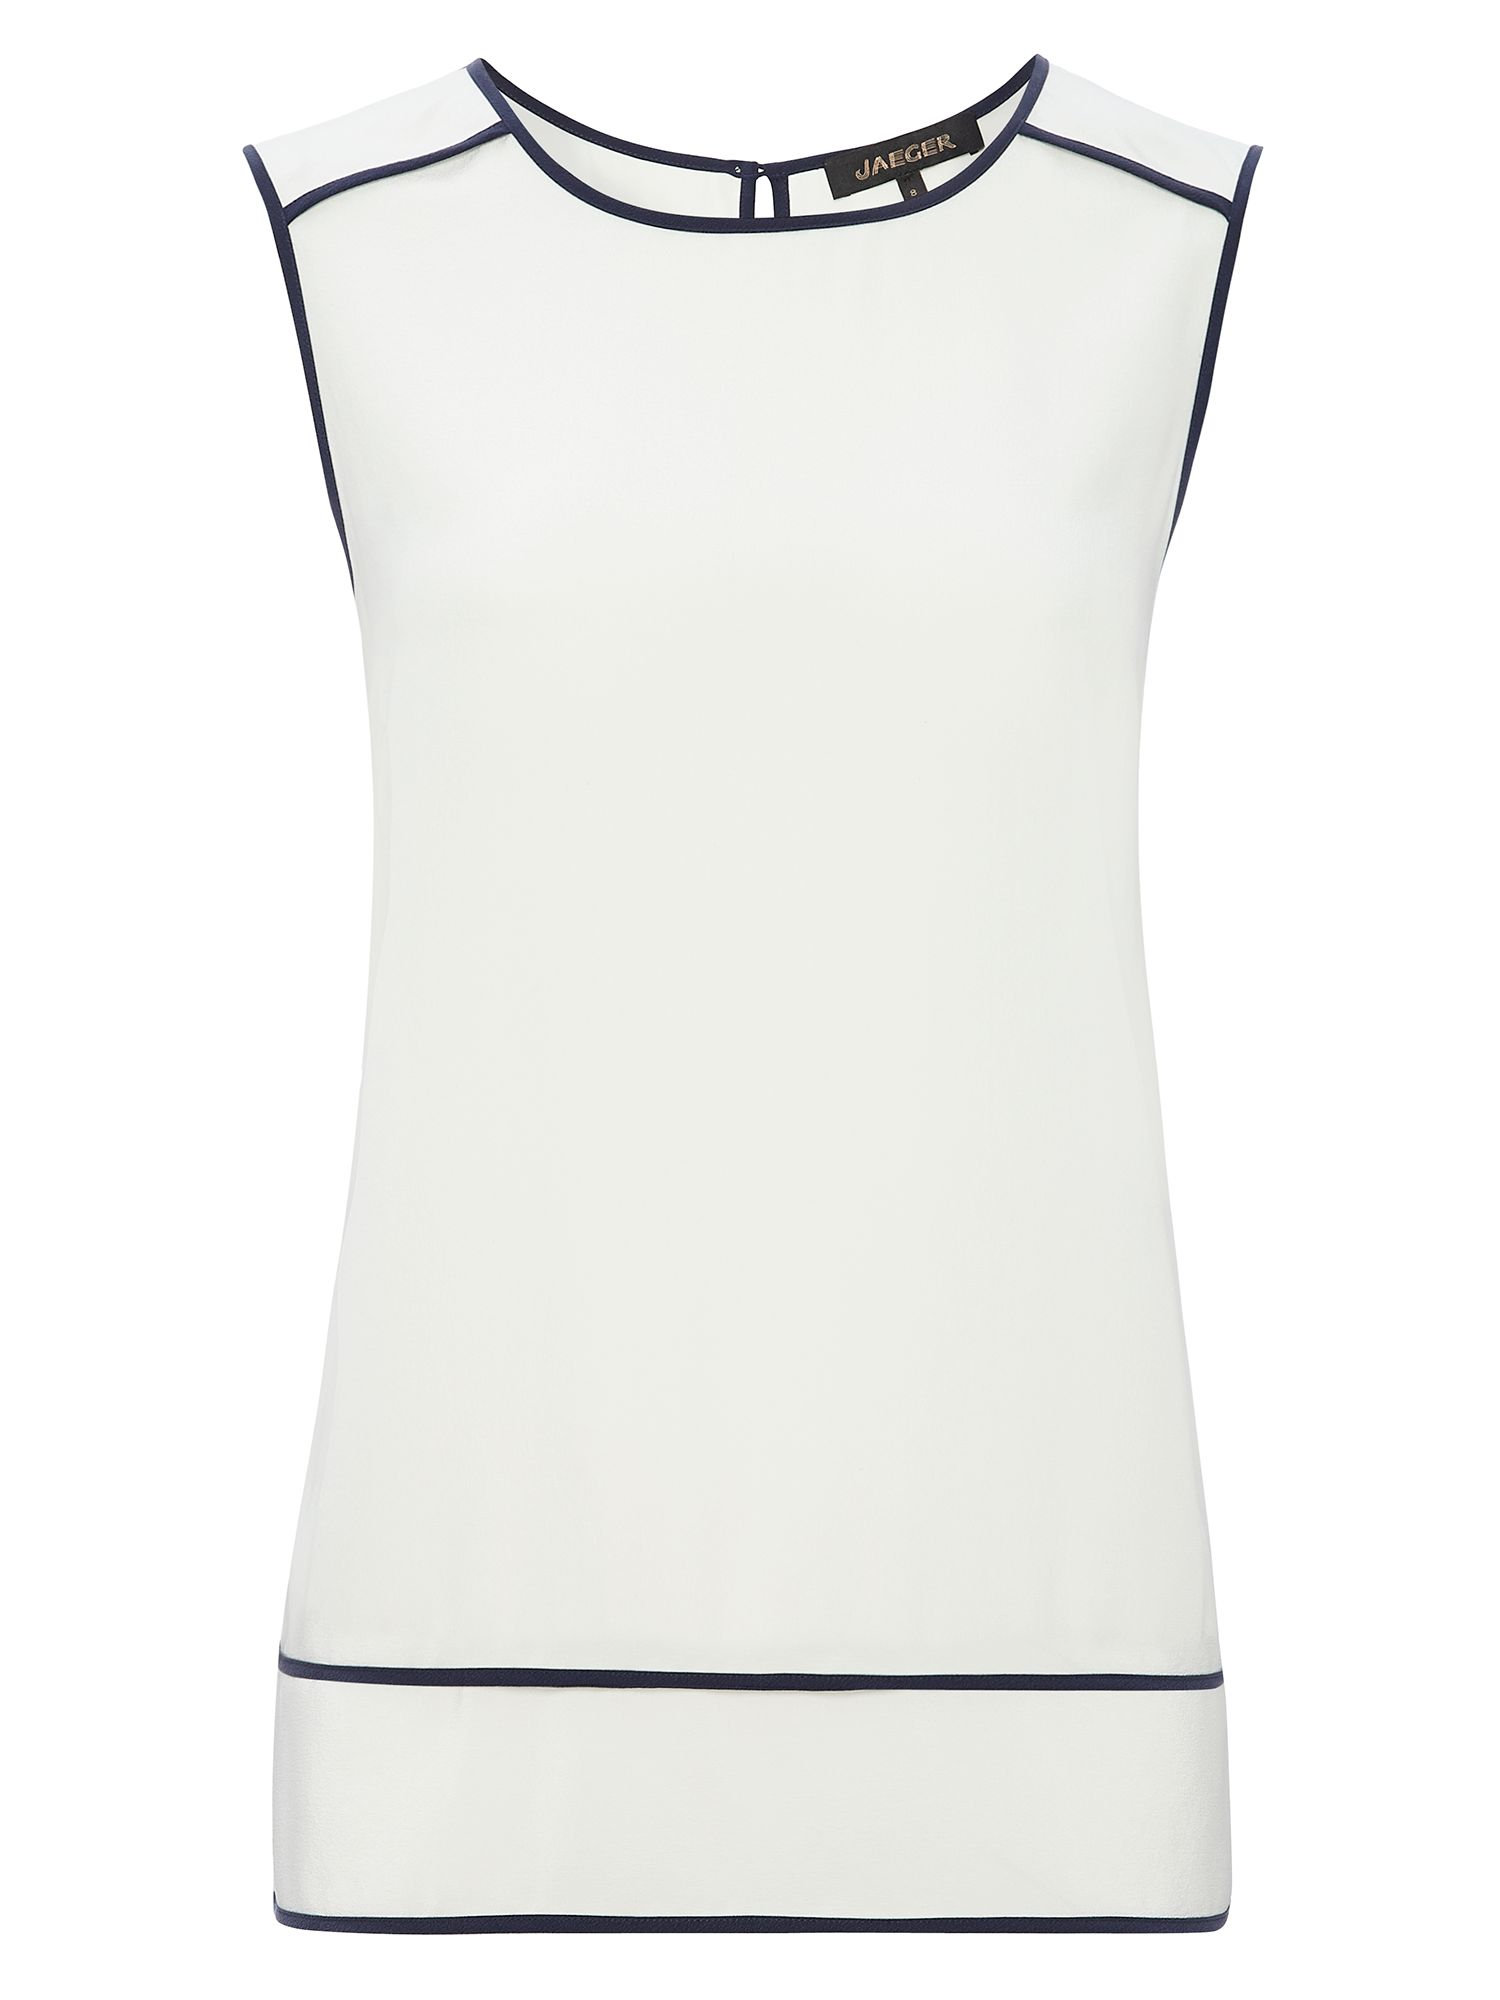 Jaeger: Silk Sleeveless Shell Top